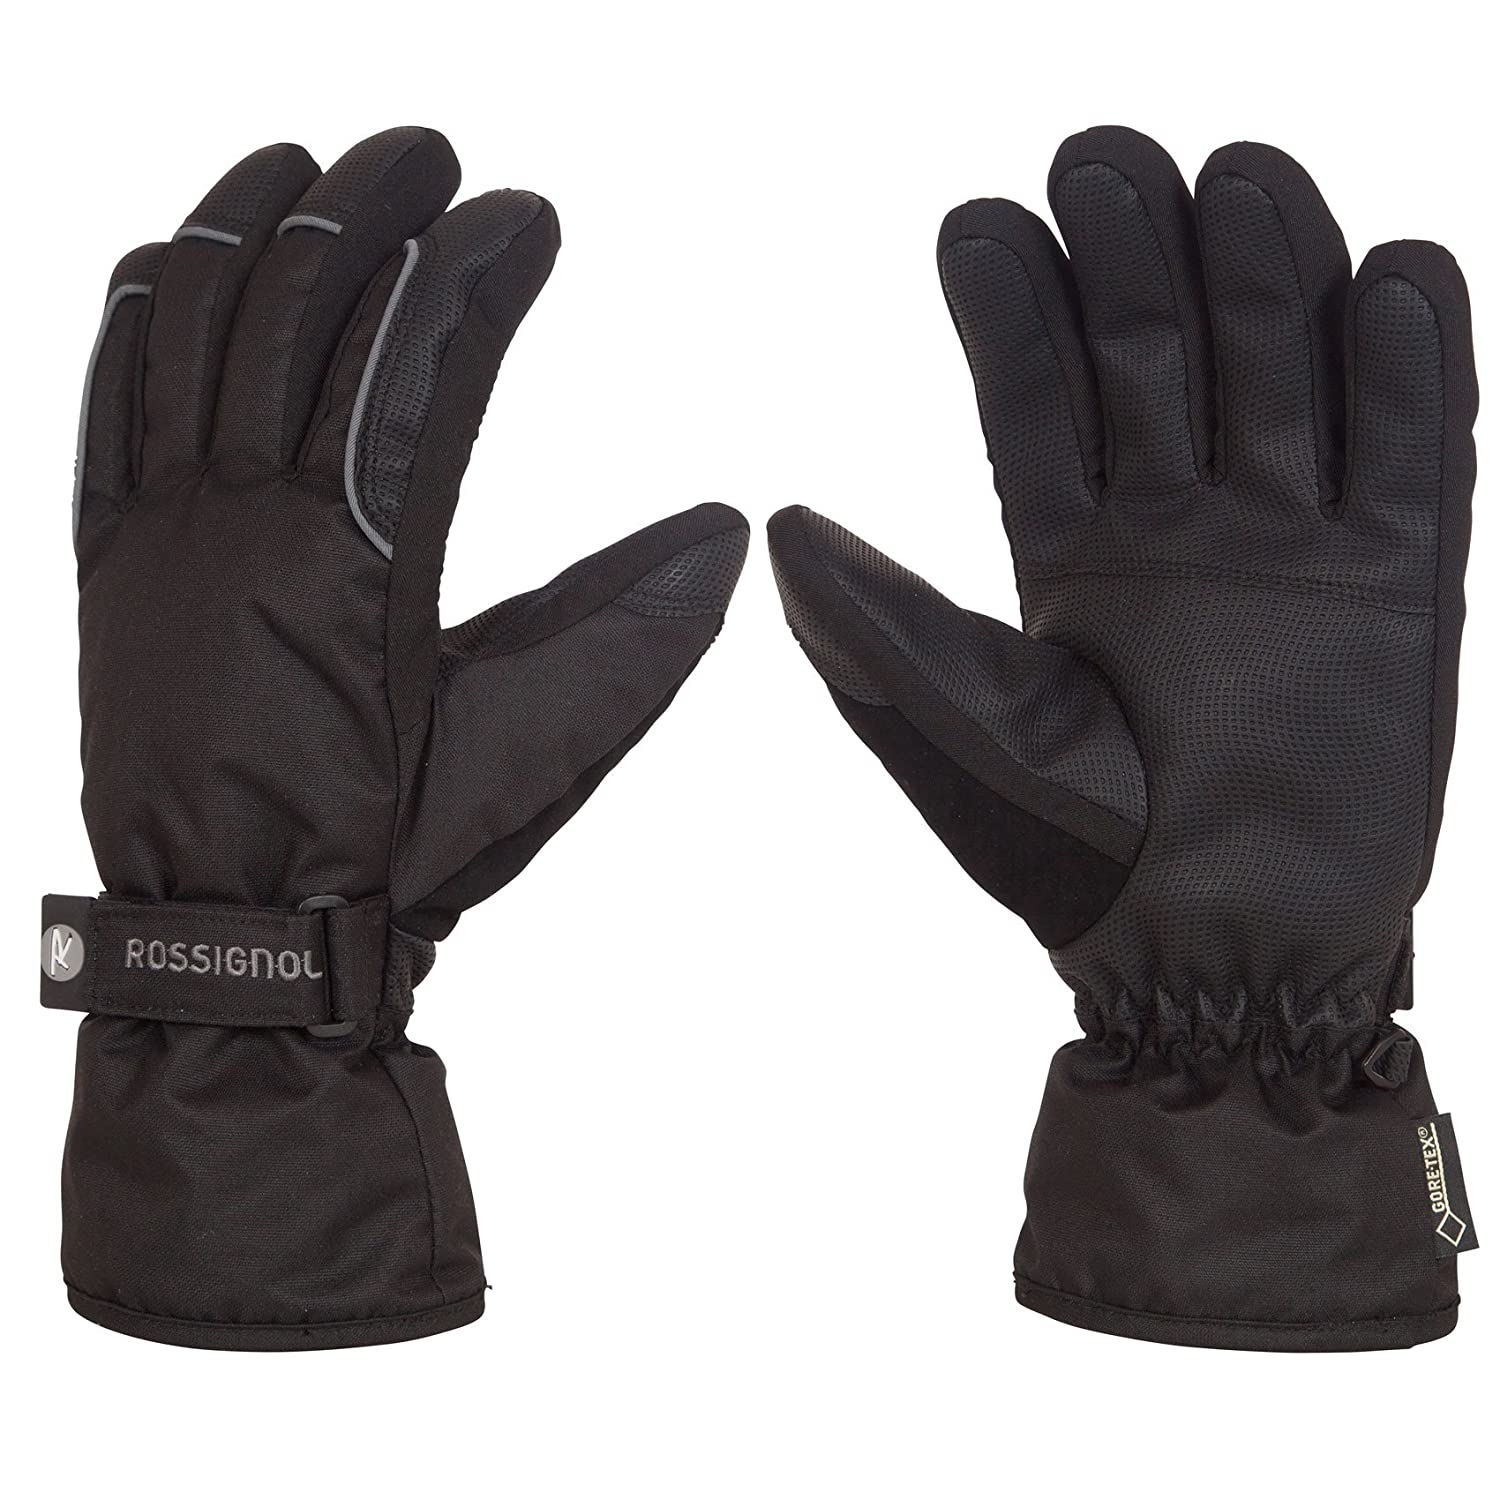 Rossignol Women's Gore Spirit Gloves Rossignol- outdoor apparel